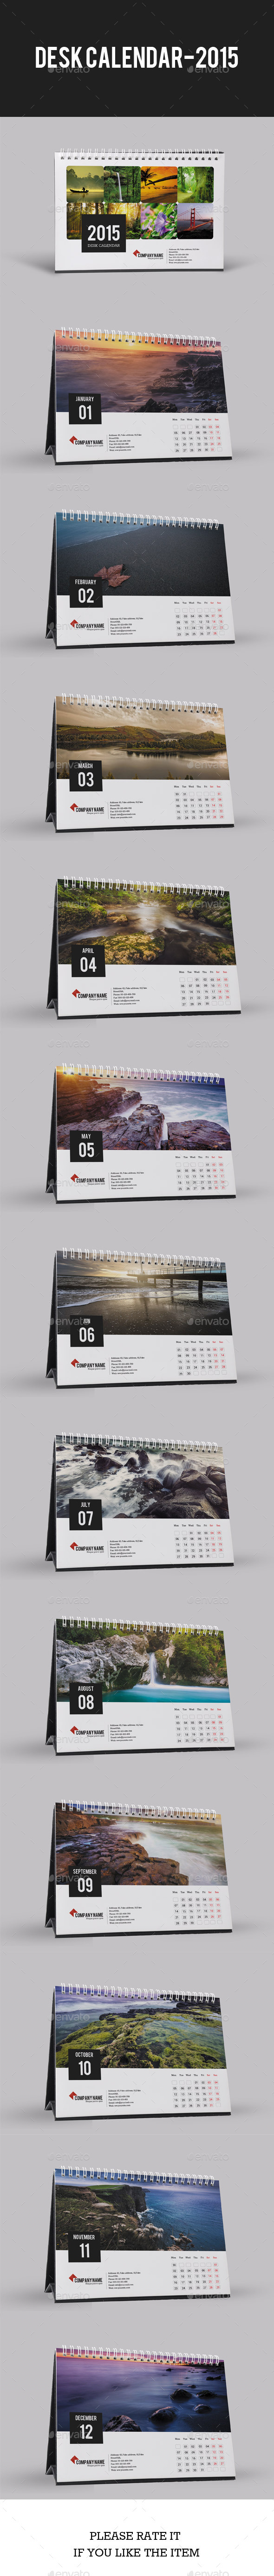 GraphicRiver Desk Calendar for 2015 9387259